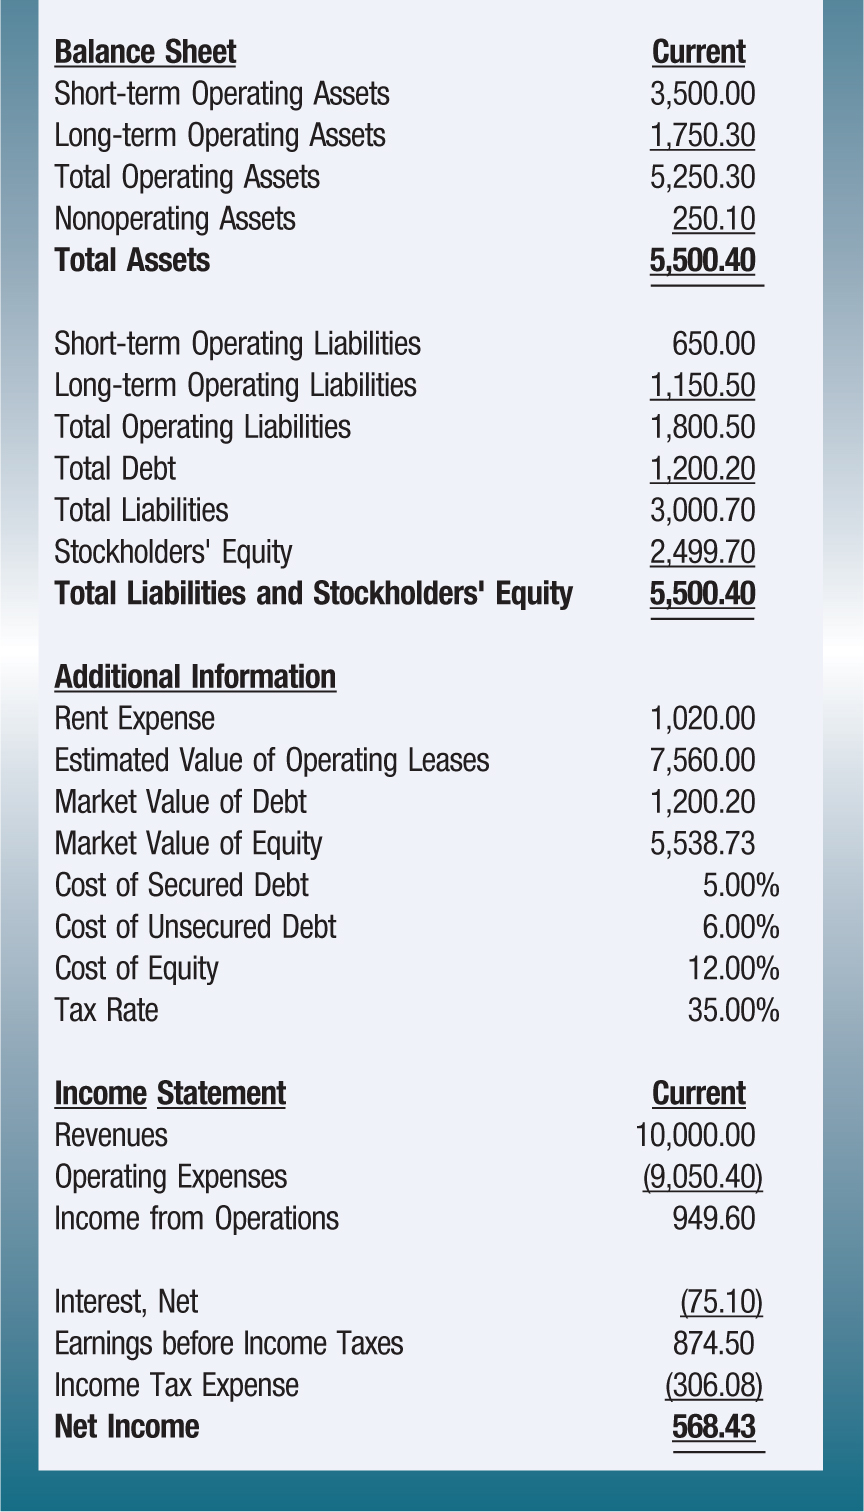 Balance Sheet; Current Short-term Operating Assets; 3,500.00 Long-term Operating Assets; 1,750.30 Total Operating Assets; 5,250.30 Nonoperating Assets; 250.10 Total Assets; 5,500.40 Short-term Operating Liabilities; 650.00 Long-term Operating Liabilities; 1,150.50 Total Operating Liabilities; 1,800.50 Total Debt; 1,200.20 Total Liabilities; 3,000.70 Stockholders' Equity; 2,499.70 Total Liabilities and Stockholders' Equity; 5,500.40 Additional Information Rent Expense; 1,020.00 Estimated Value of Operating Leases; 7,560.00 Market Value of Debt; 1,200.20 Market Value of Equity; 5,538.73 Cost of Secured Debt; 5.00% Cost of Unsecured Debt; 6.00% Cost of Equity; 12.00% Tax Rate; 35.00% Income Statement; Current Revenues; 10,000.00 Operating Expenses; (9,050.40) Income from Operations; 949.60 Interest, Net; (75.10) Earnings before Income Taxes; 874.50 Income Tax Expense; (306.08) Net Income; 568.43